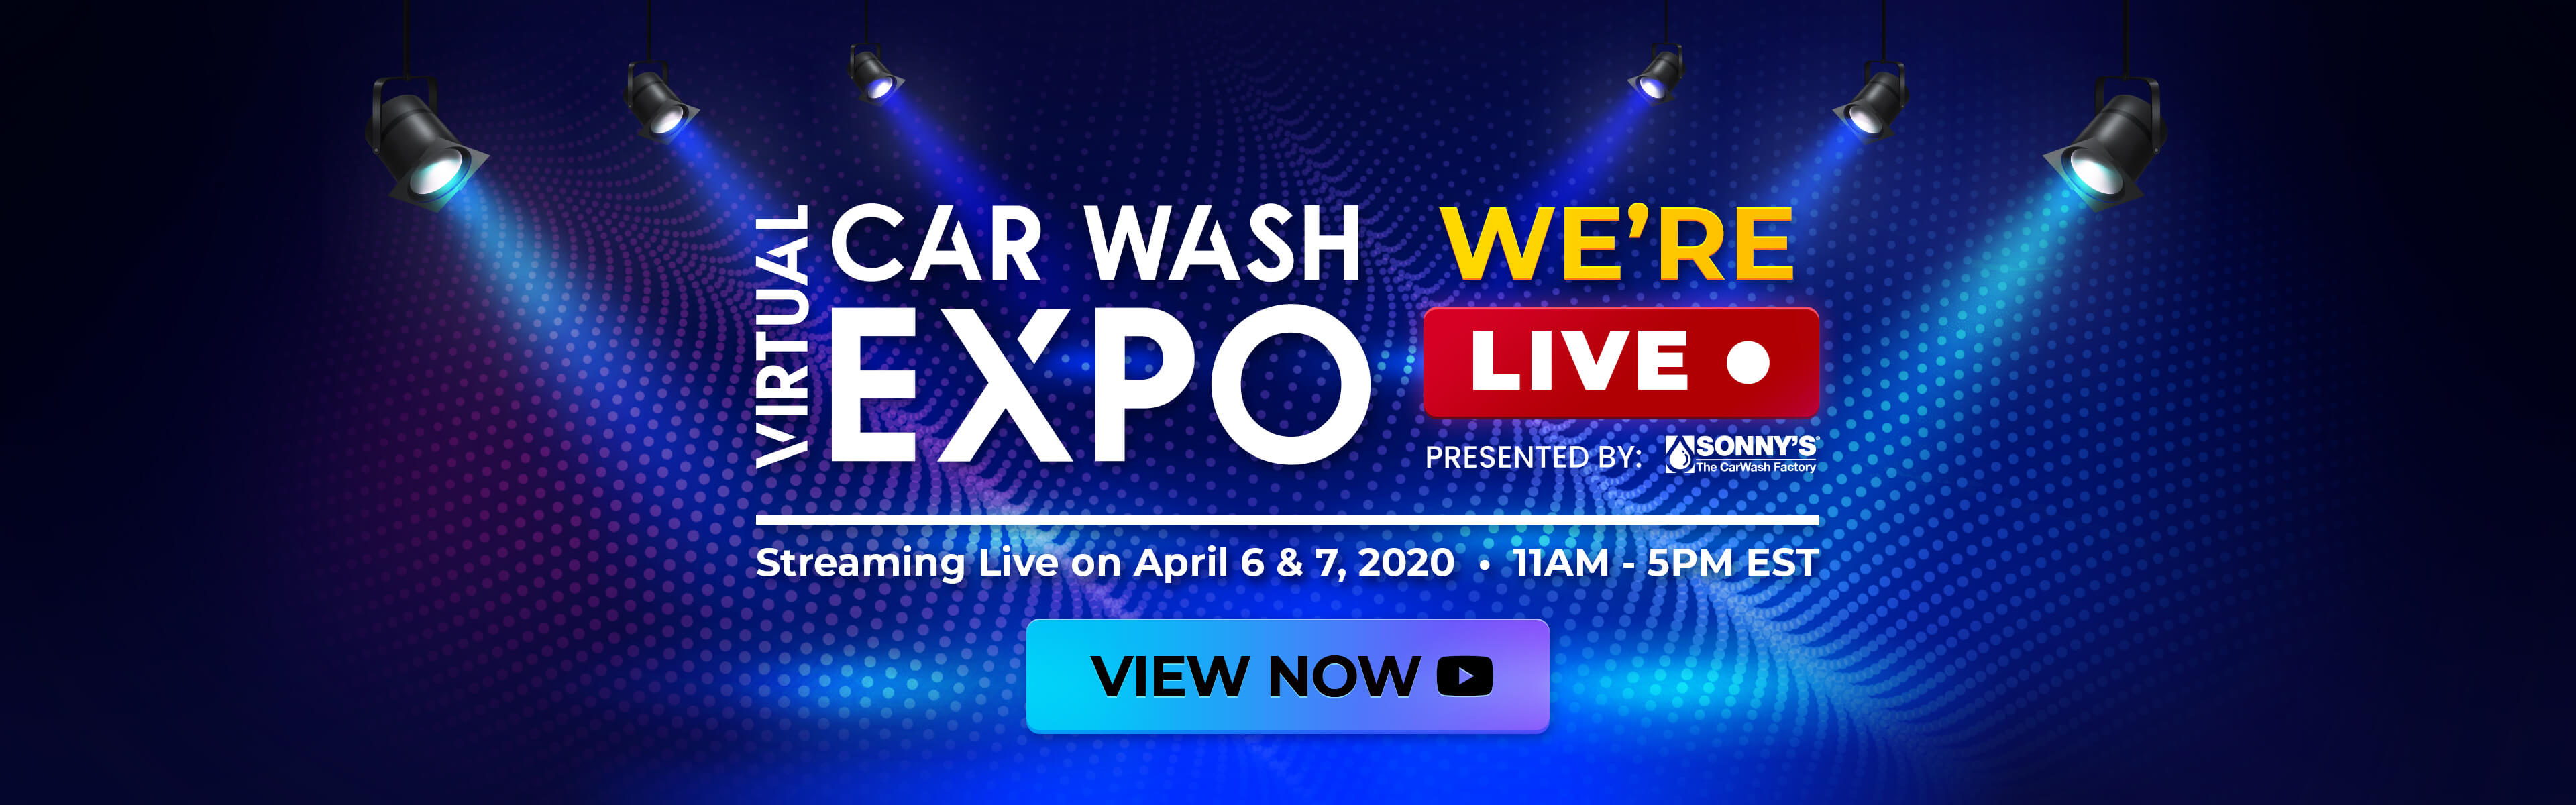 We're Live - Register Today for the Virtual Car Wash Expo (Limited Seats Remain)